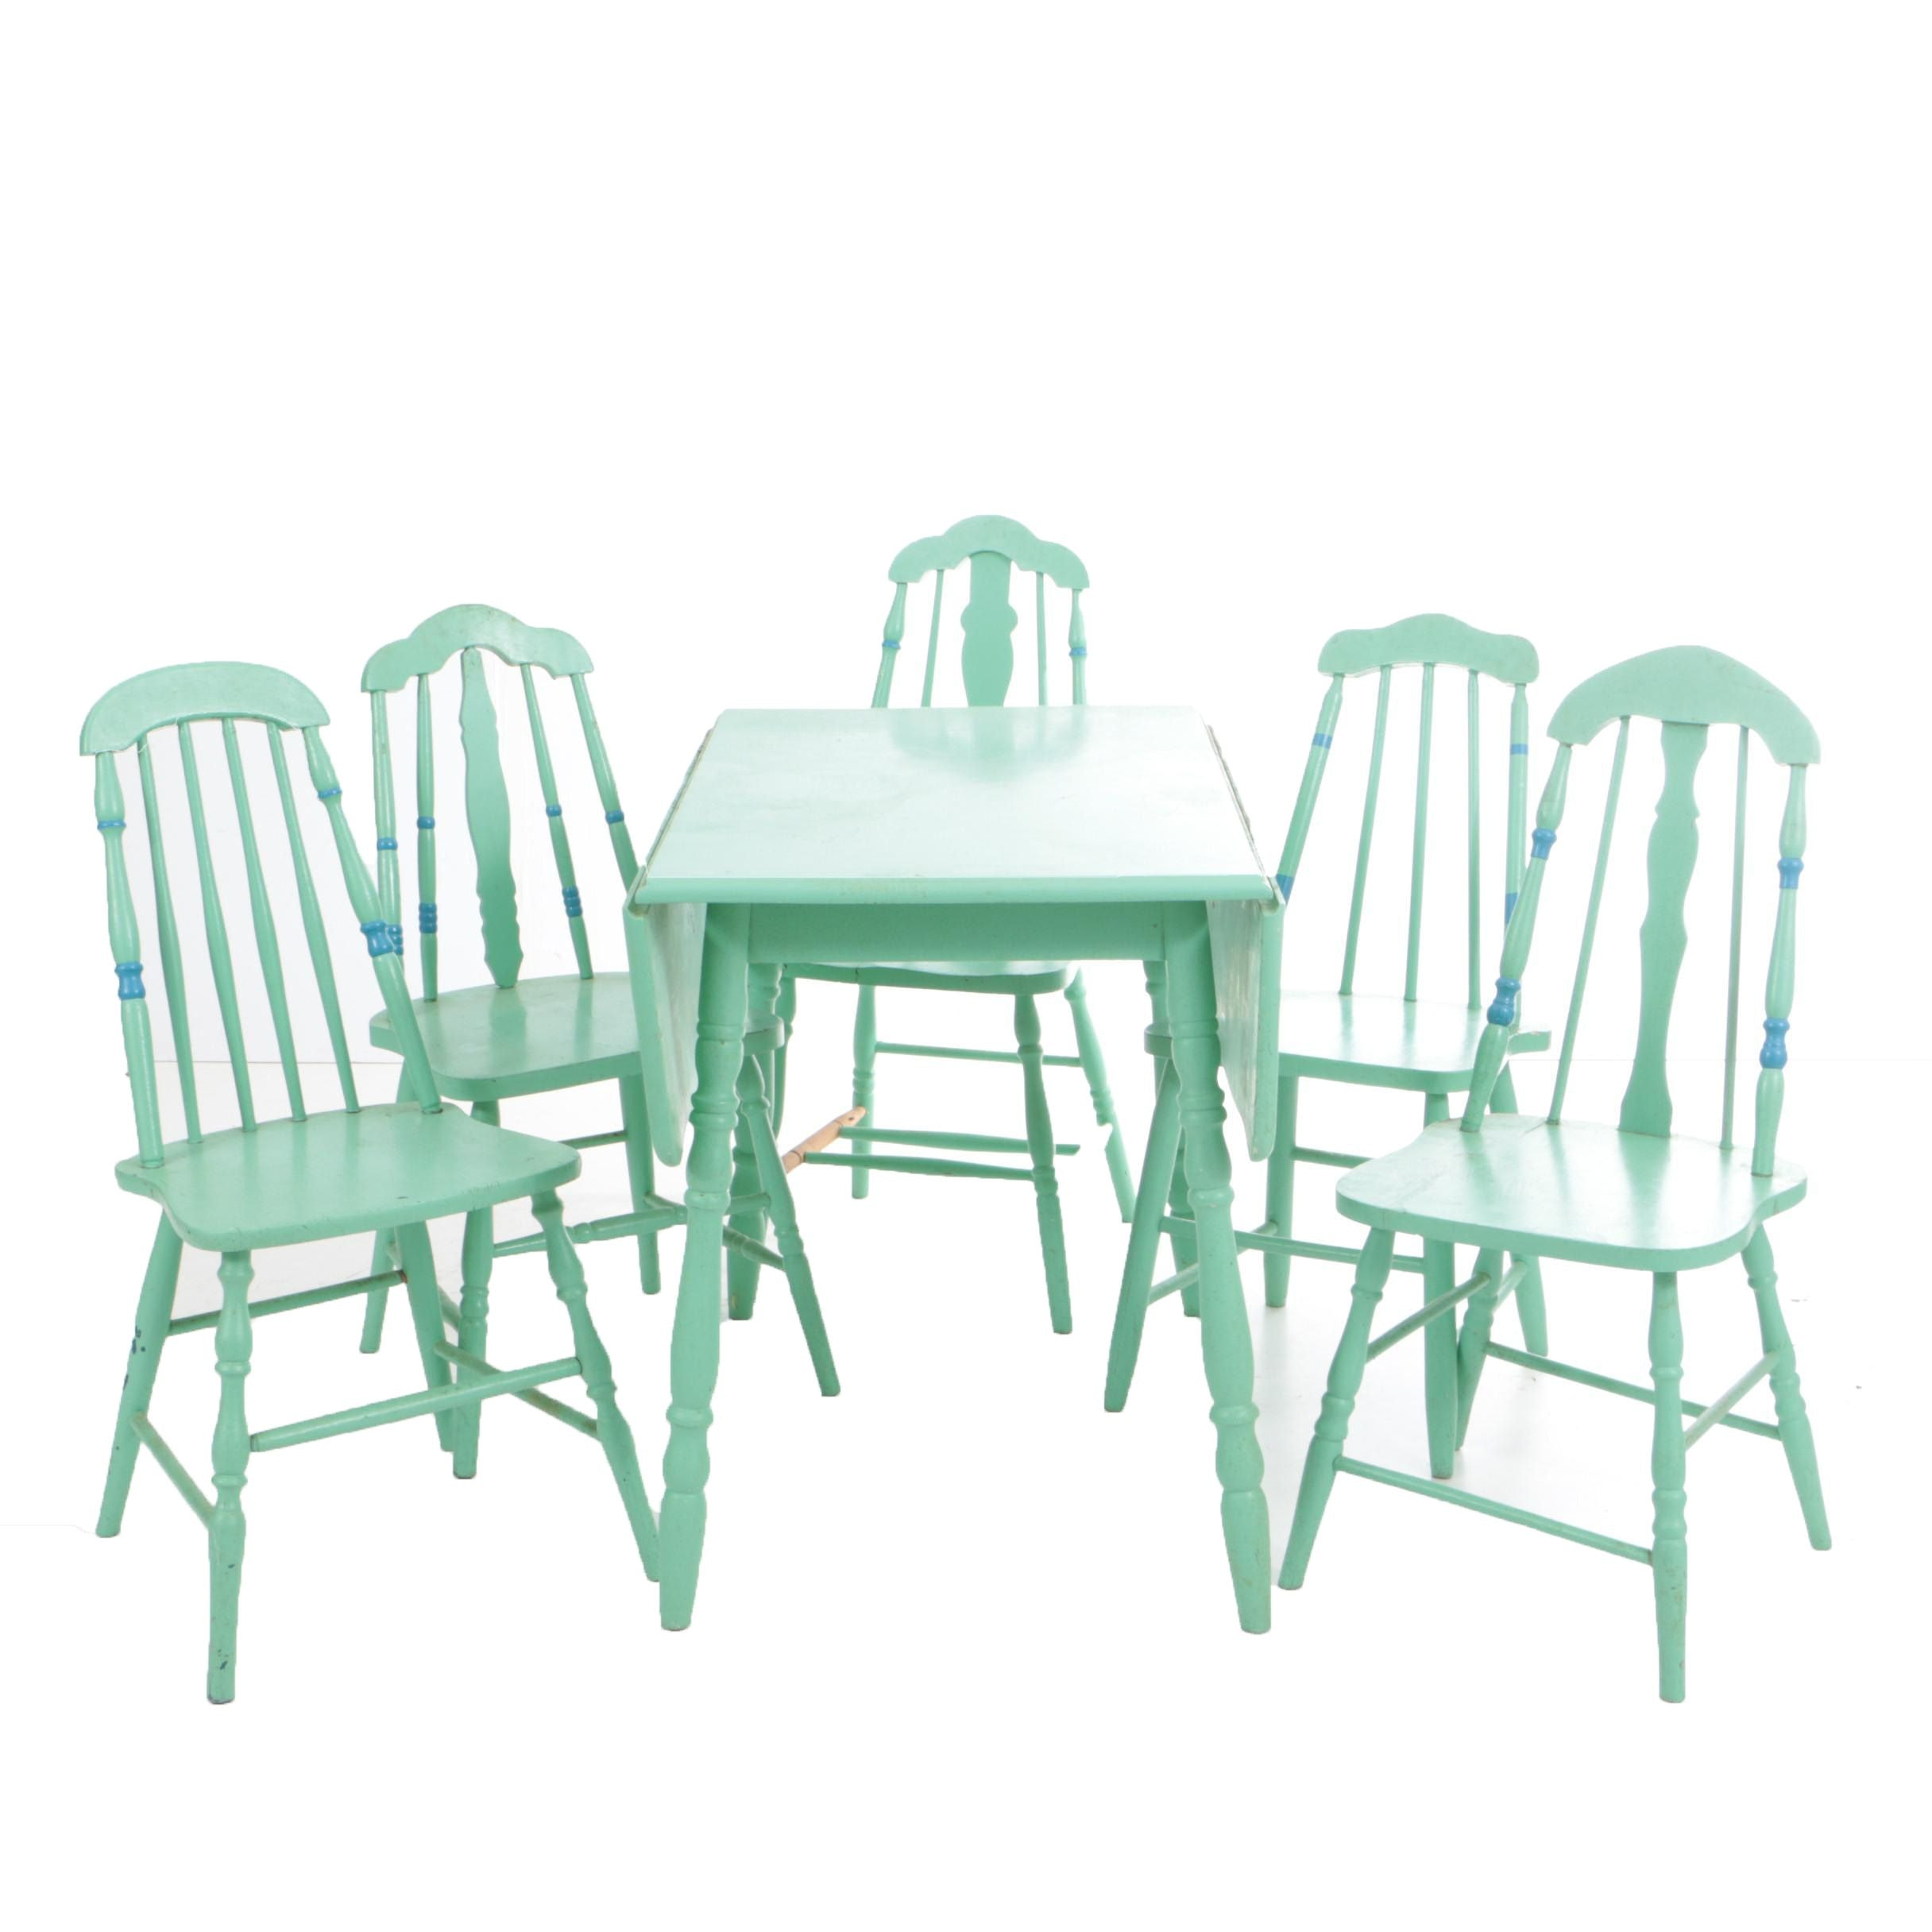 Vintage Drop-Leaf Dining Table and Side Chairs in Later, Green and Blue Paint